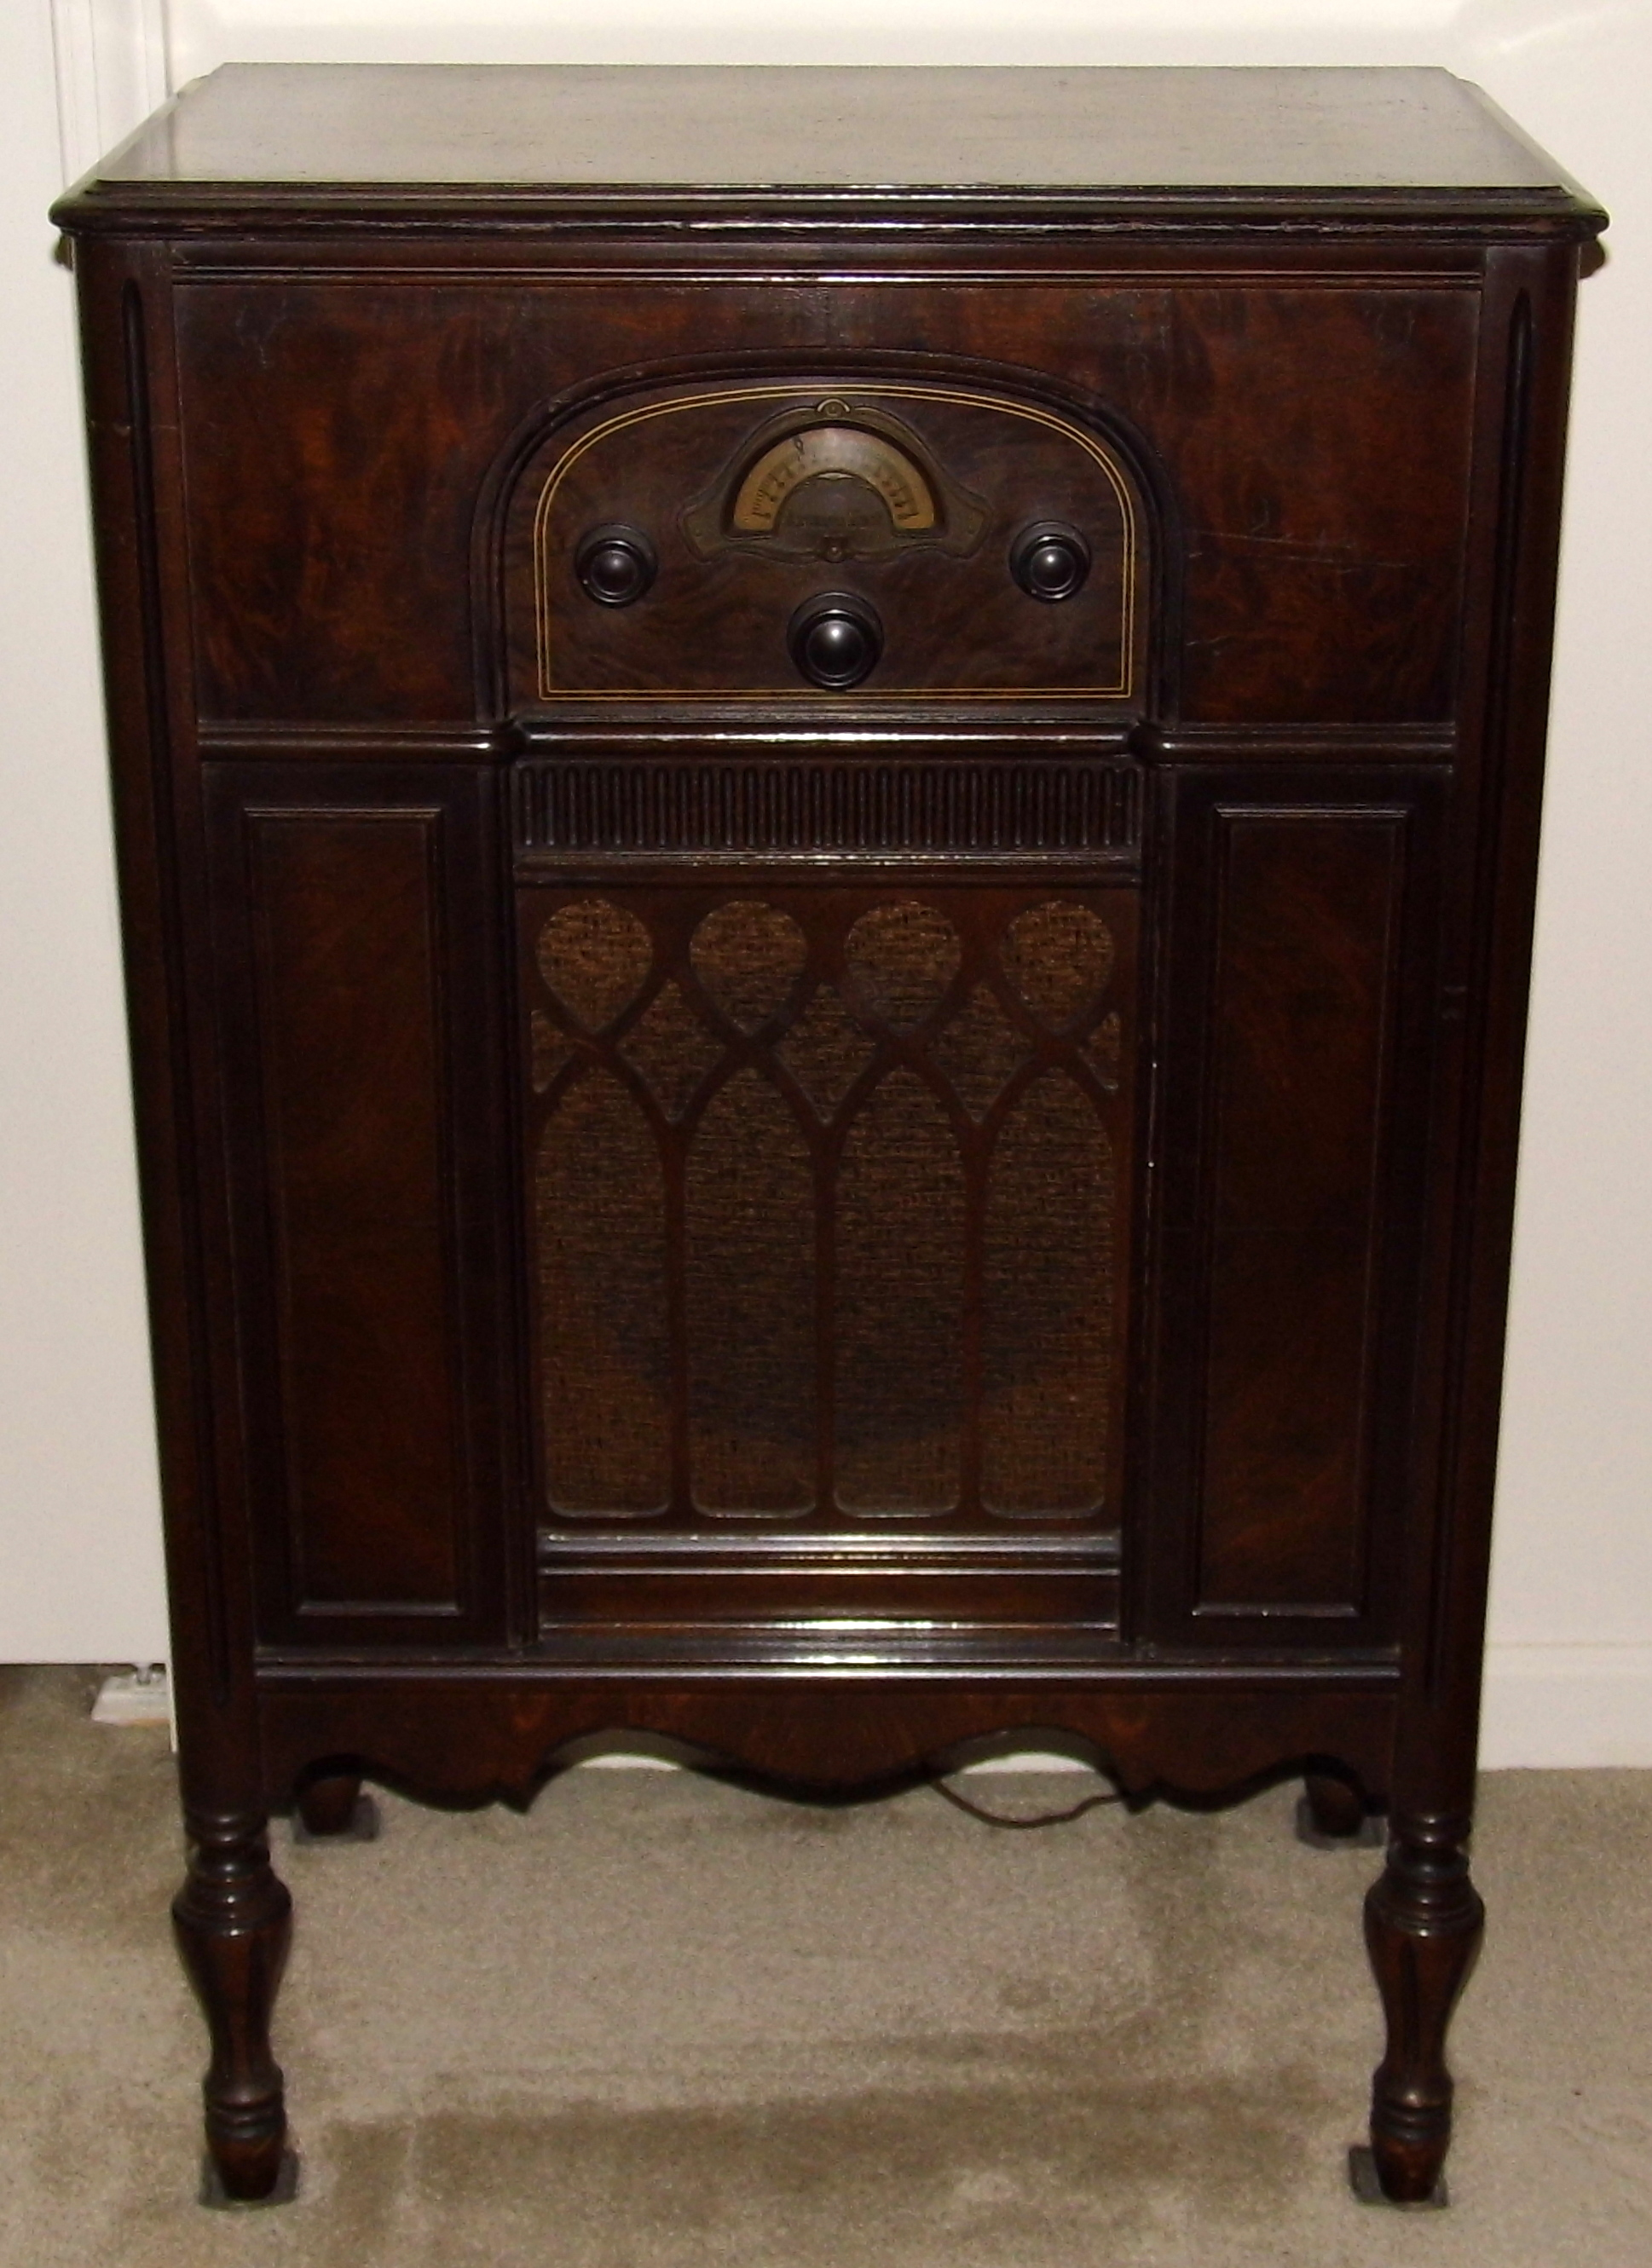 Superb File:Vintage Atwater Kent Lowboy Console Radio, Model 85, American Walnut  Wood Cabinet